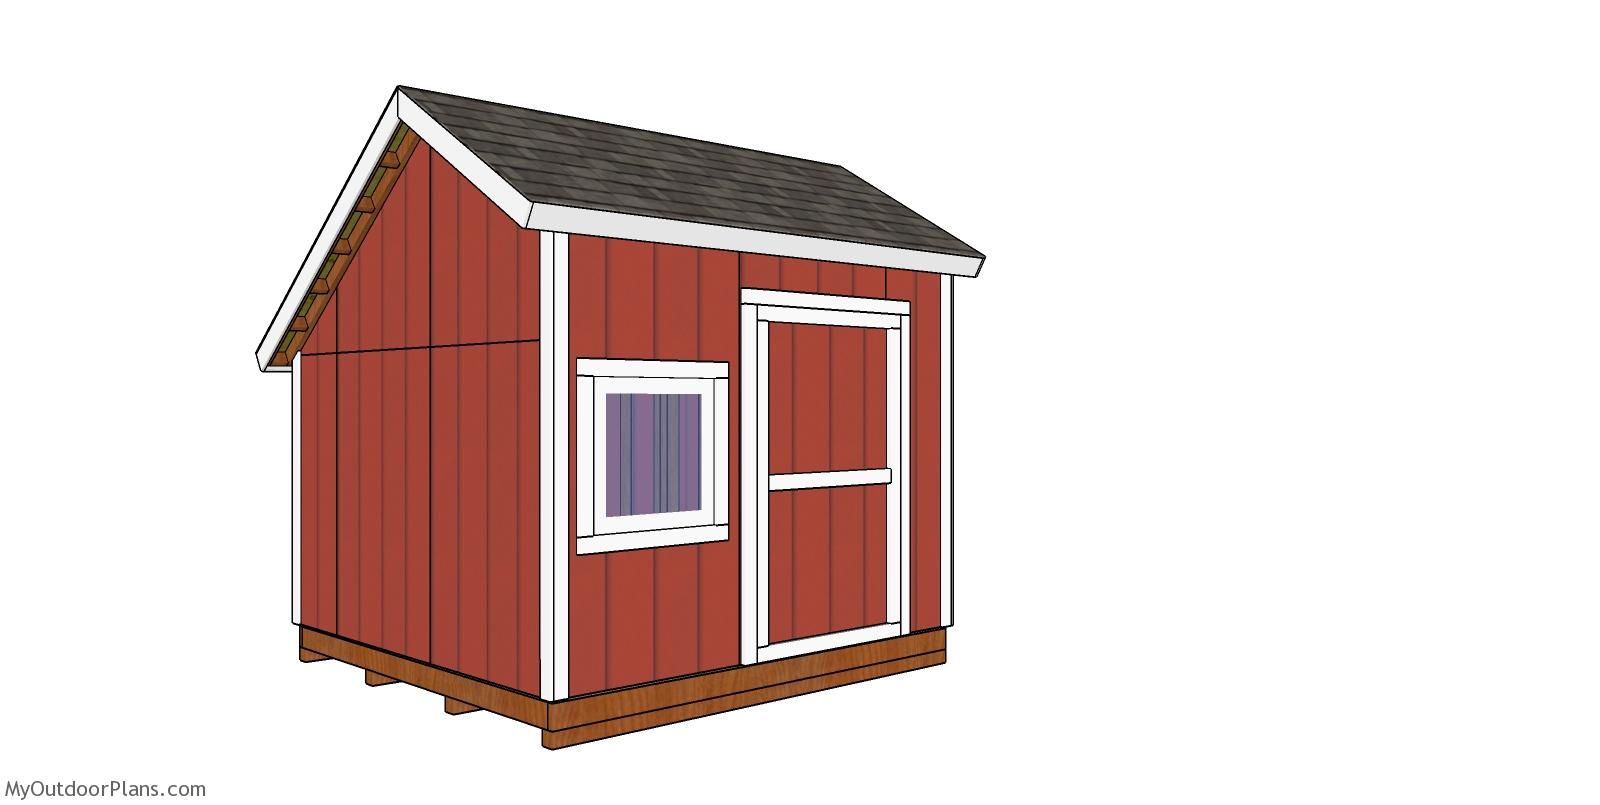 10x10 Saltbox Shed - Free DIY Plans